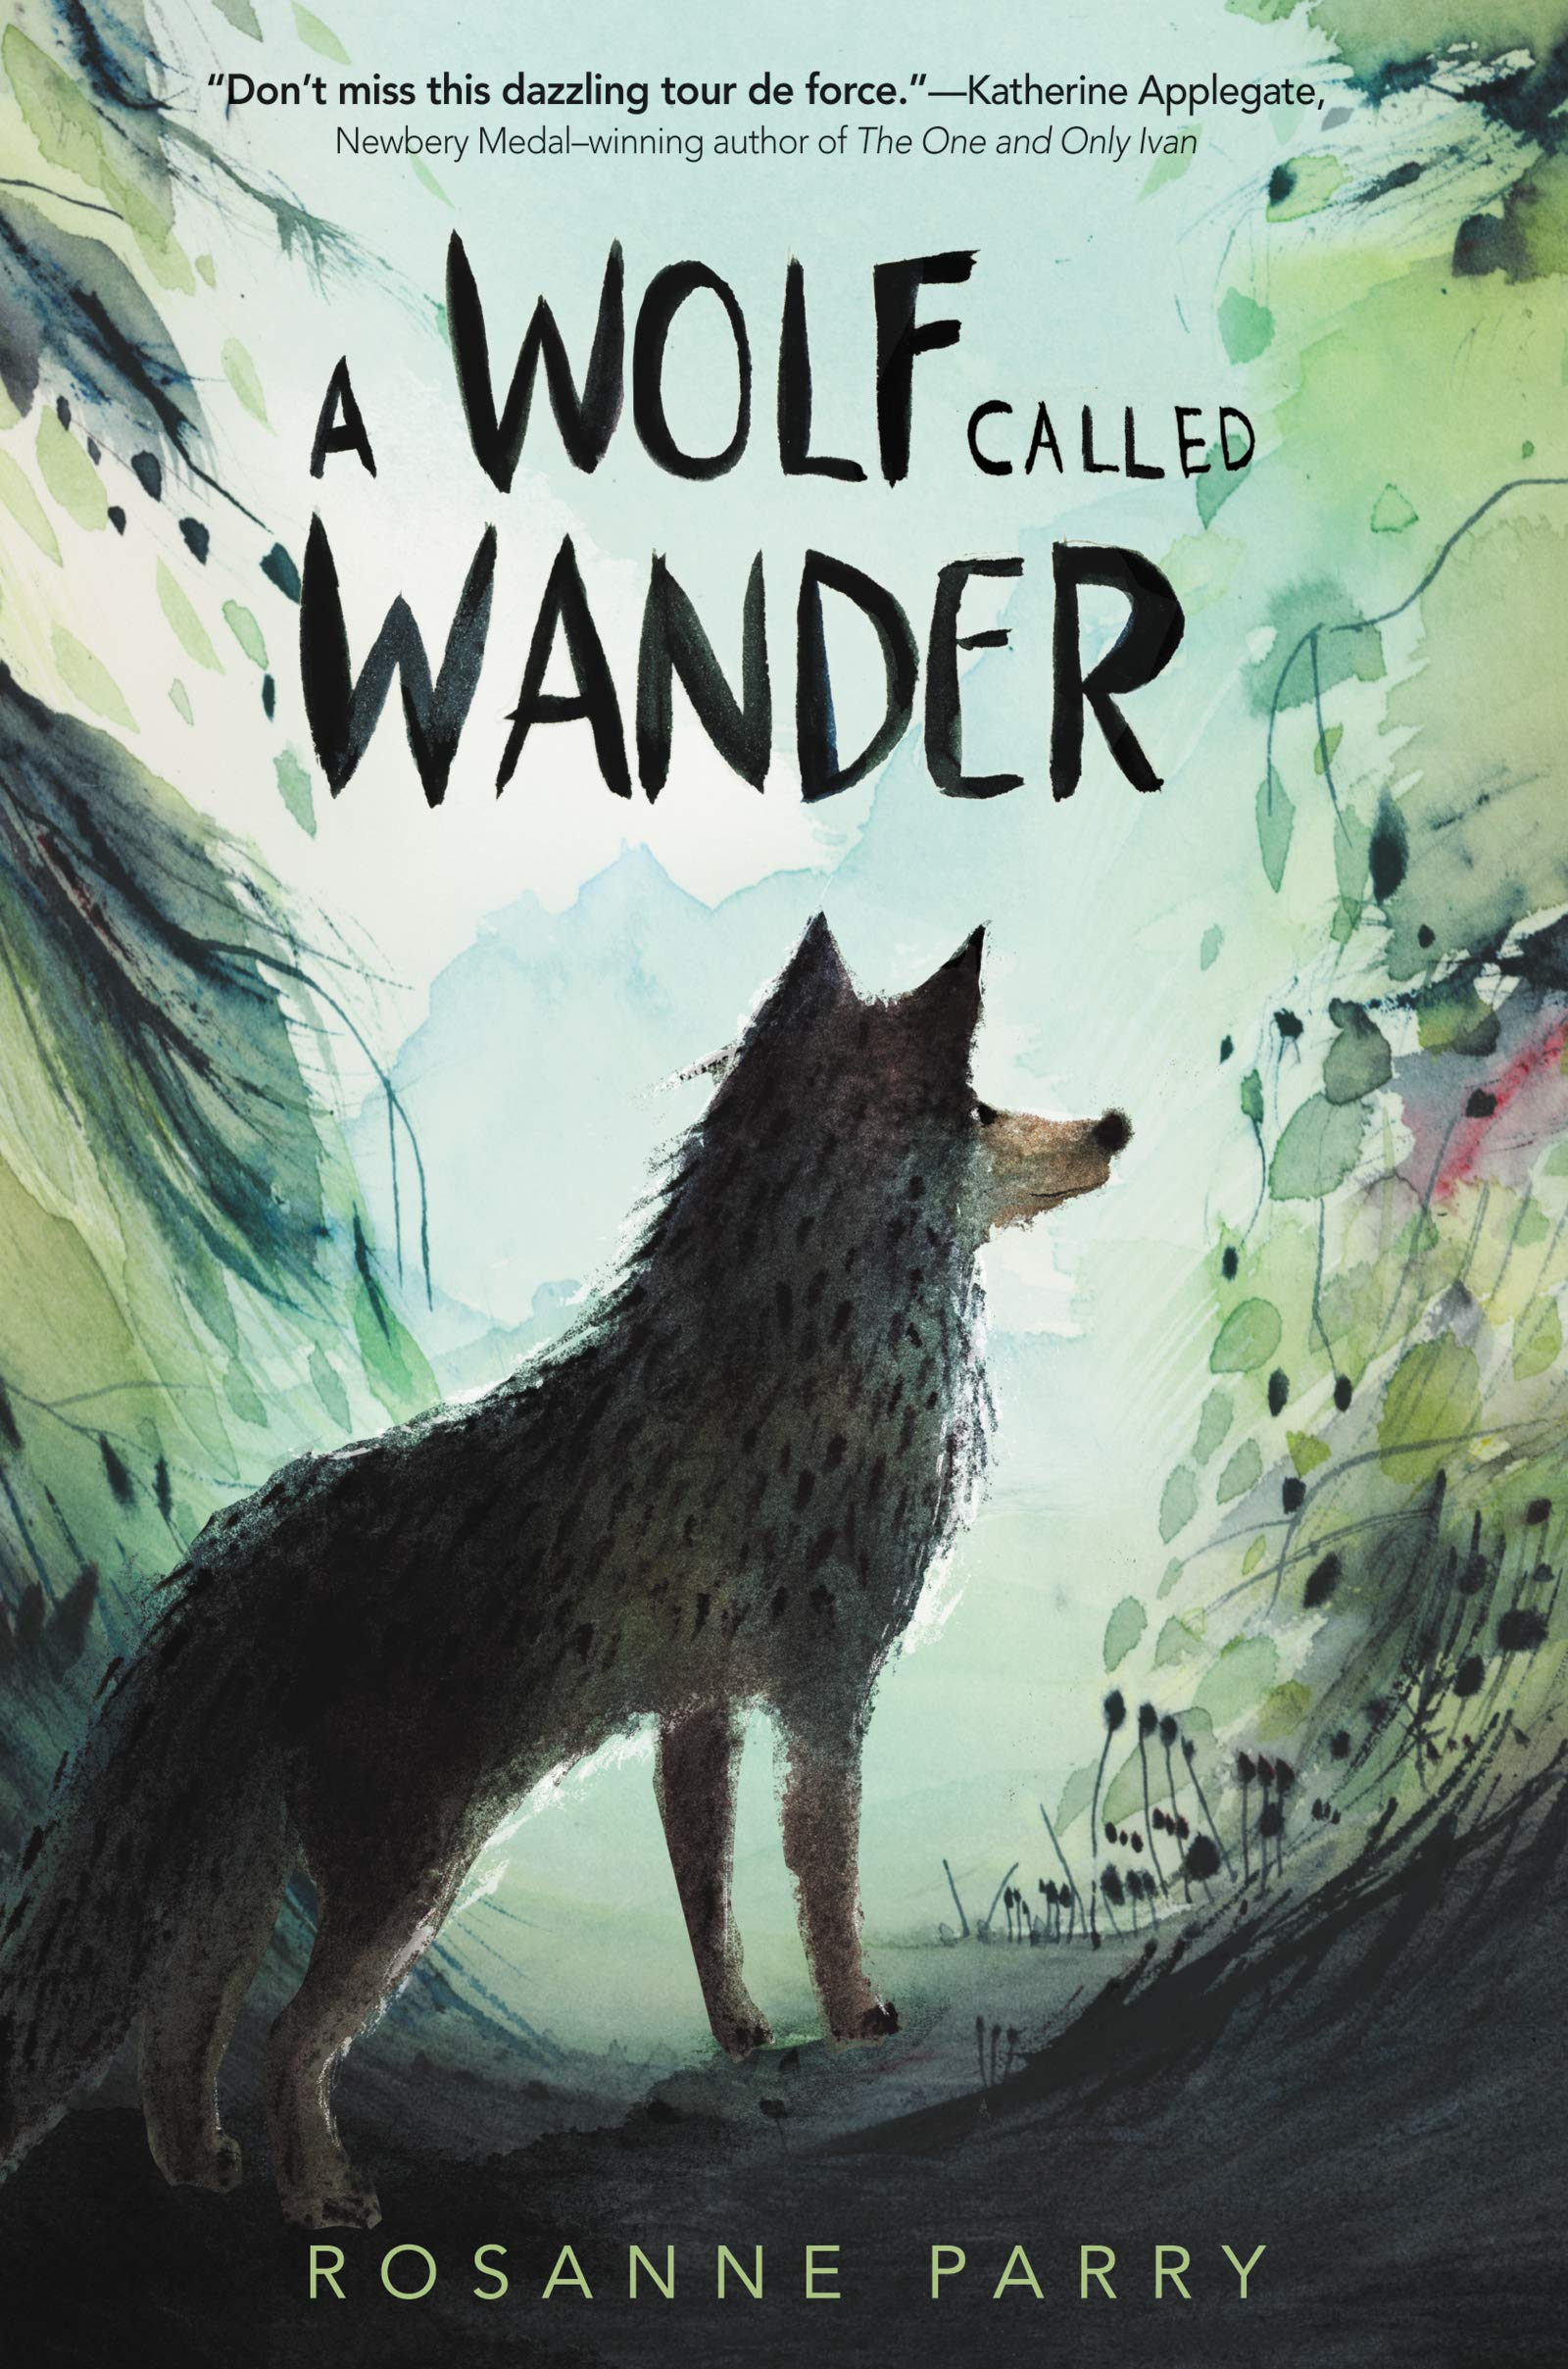 Greenwillow Books (May 7, 2019)